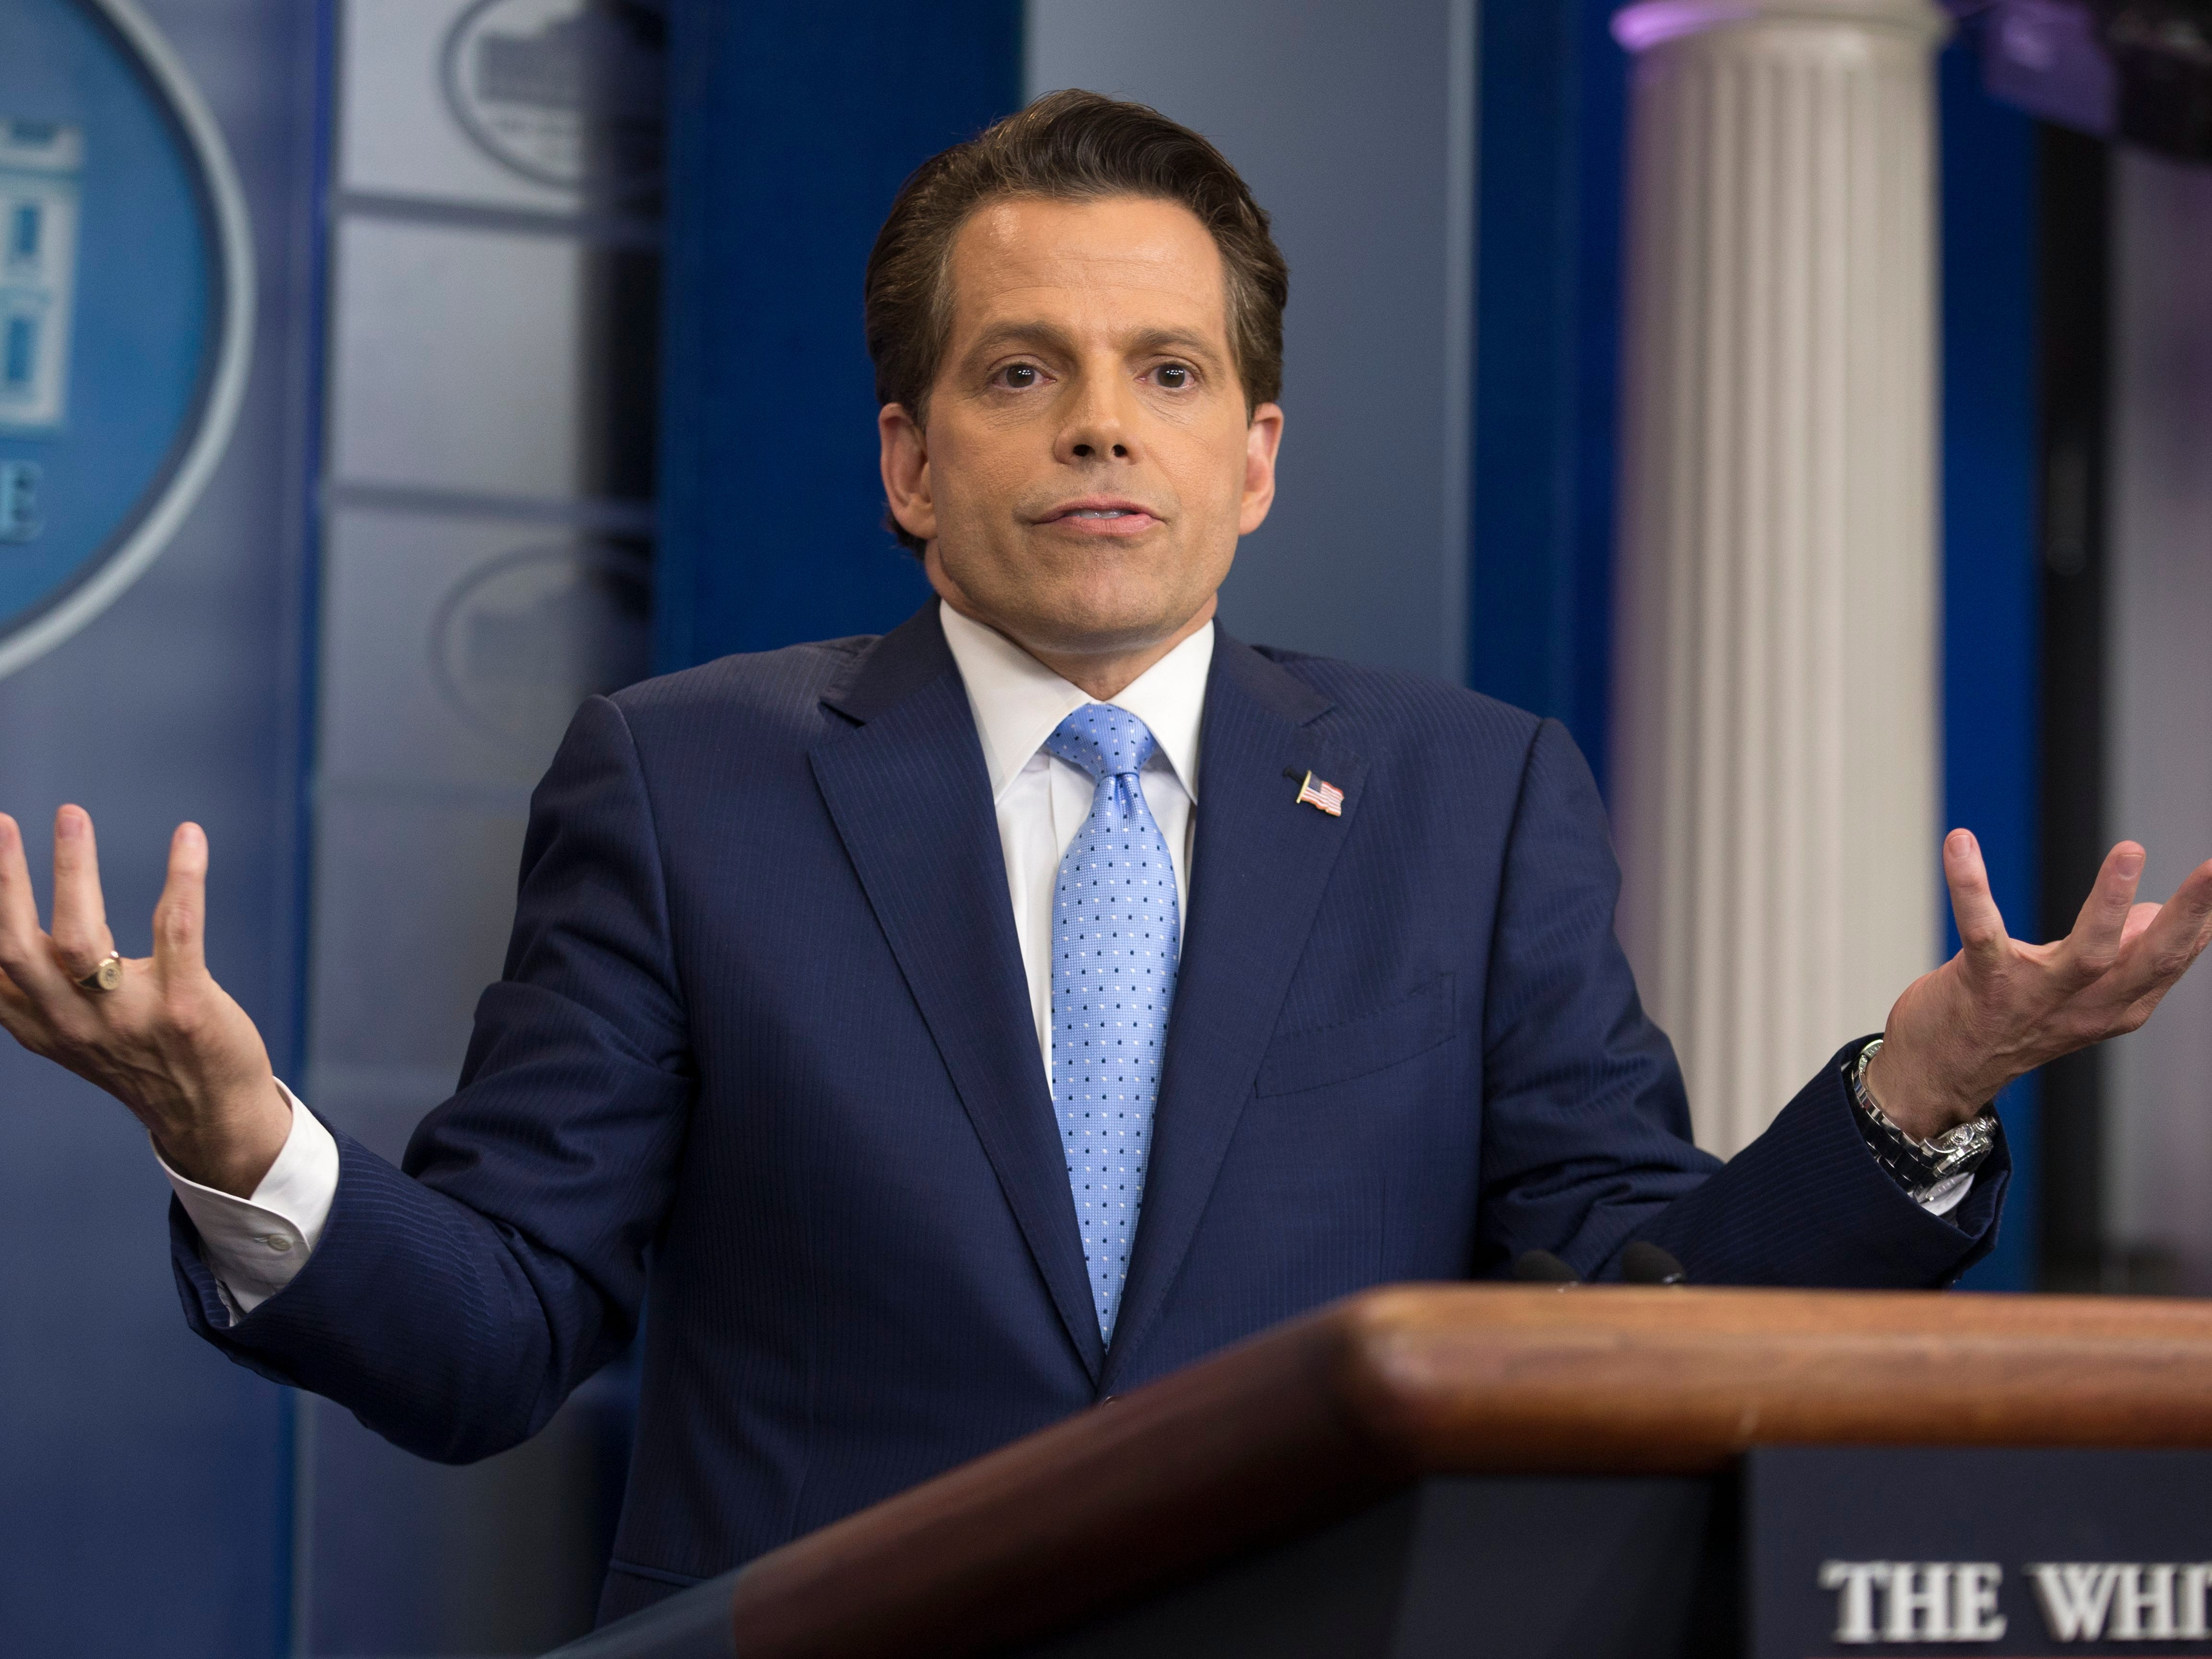 Anthony Scaramucci defends 11-day White House stint on 'Celebrity Big Brother'